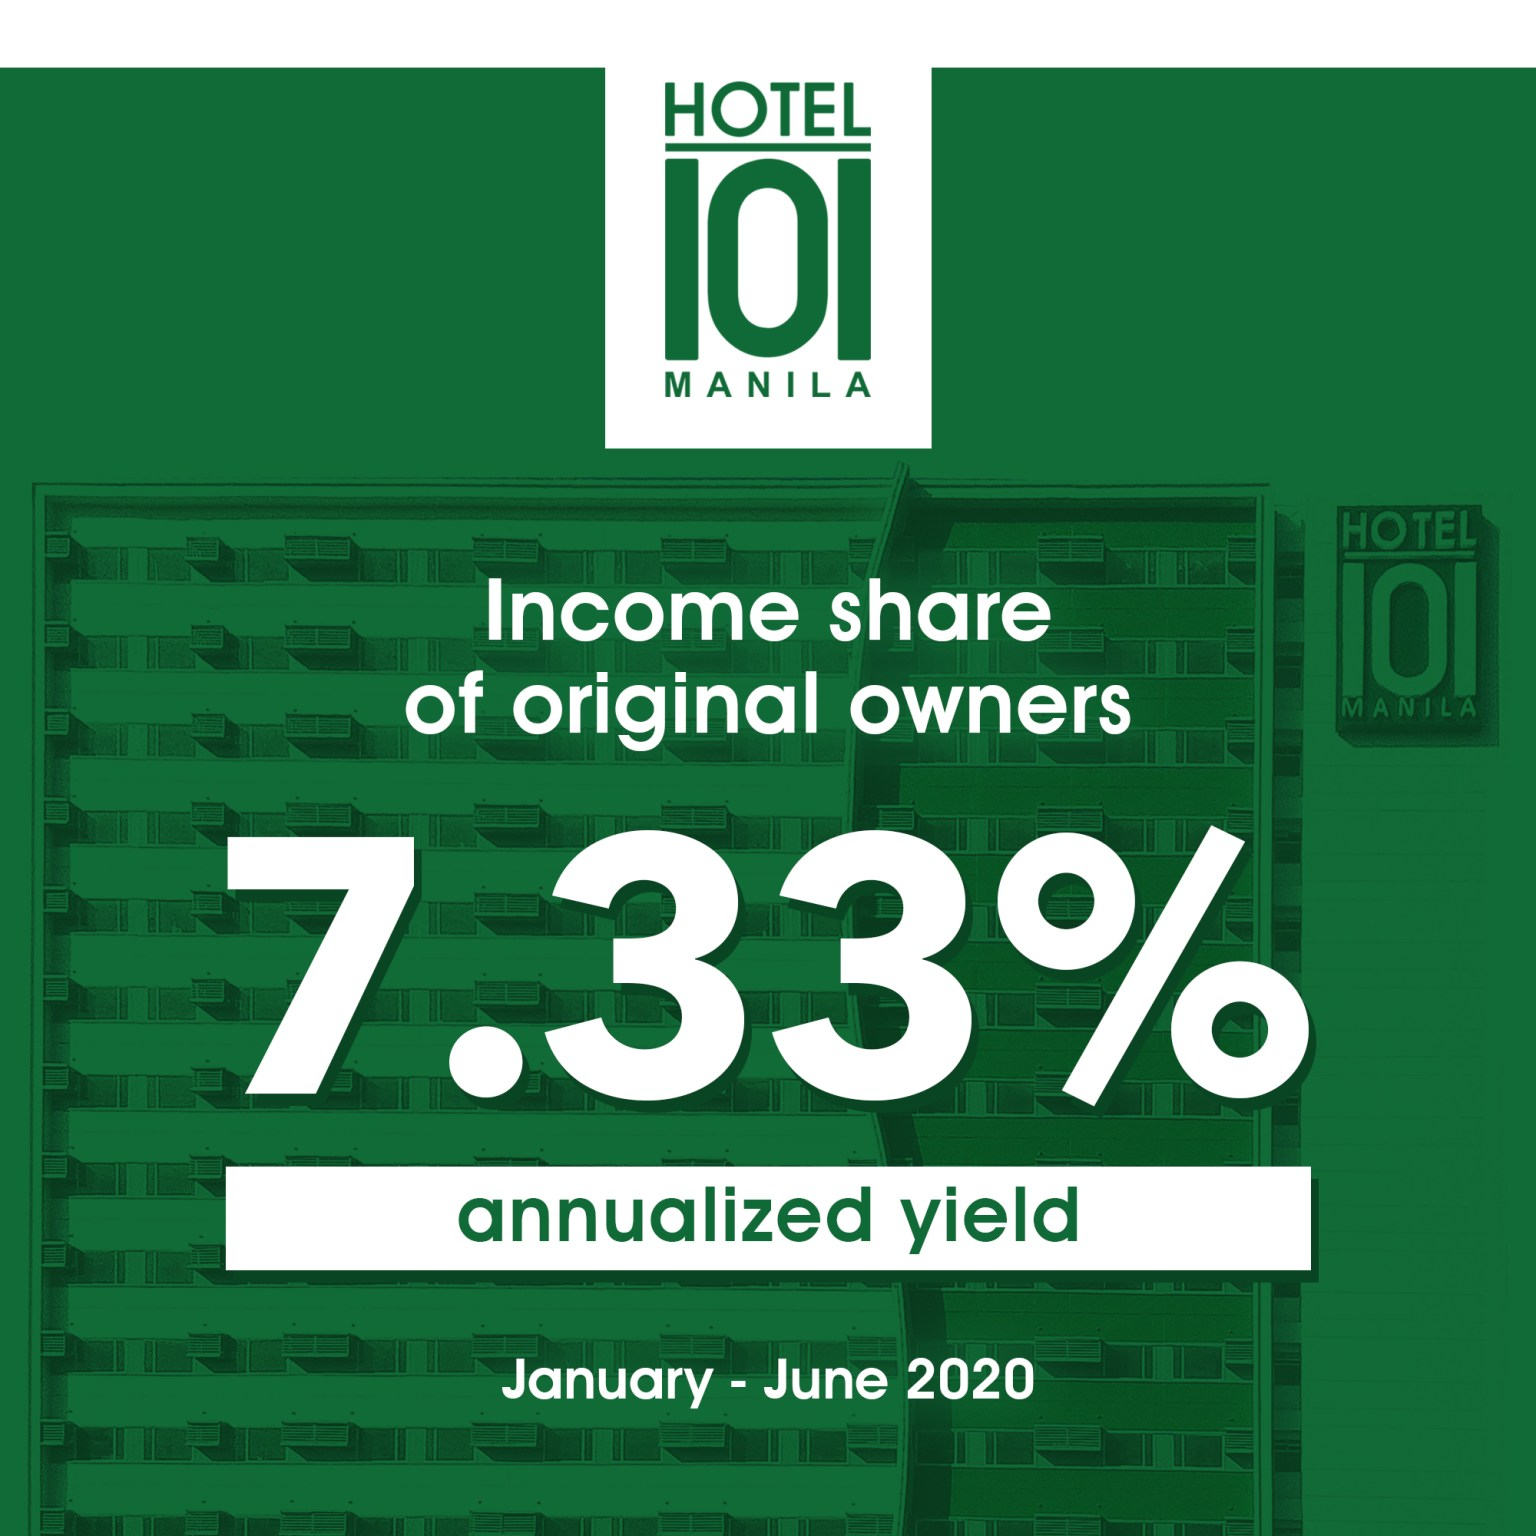 Hotel 101 - Manila 1H 2020 Annualized Yield